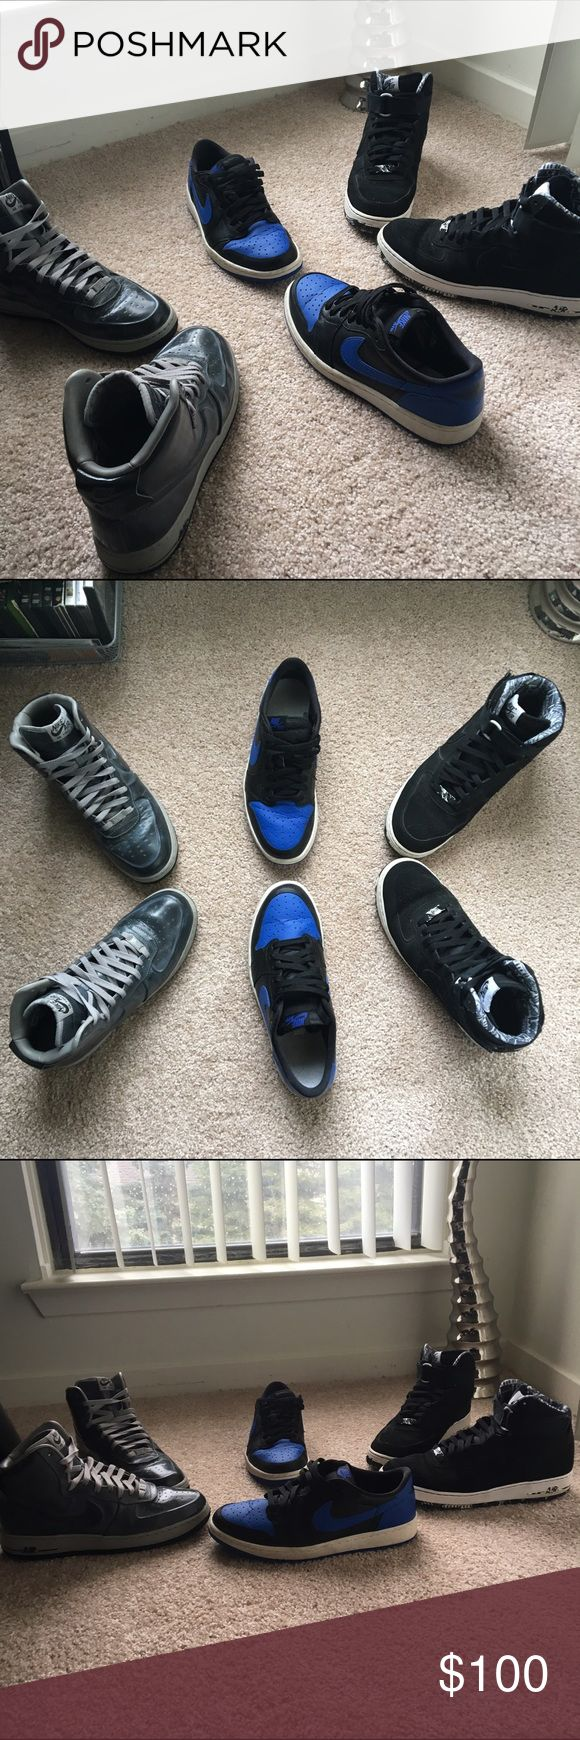 Nike Air Force one(s) and Nike Jordan air retro 1 Bundle! 3 pairs of Nike shoes, Air Force one and Jordan retro 1 low top, these can also be bought as single pairs check them out in my closet! Nike Shoes Sneakers